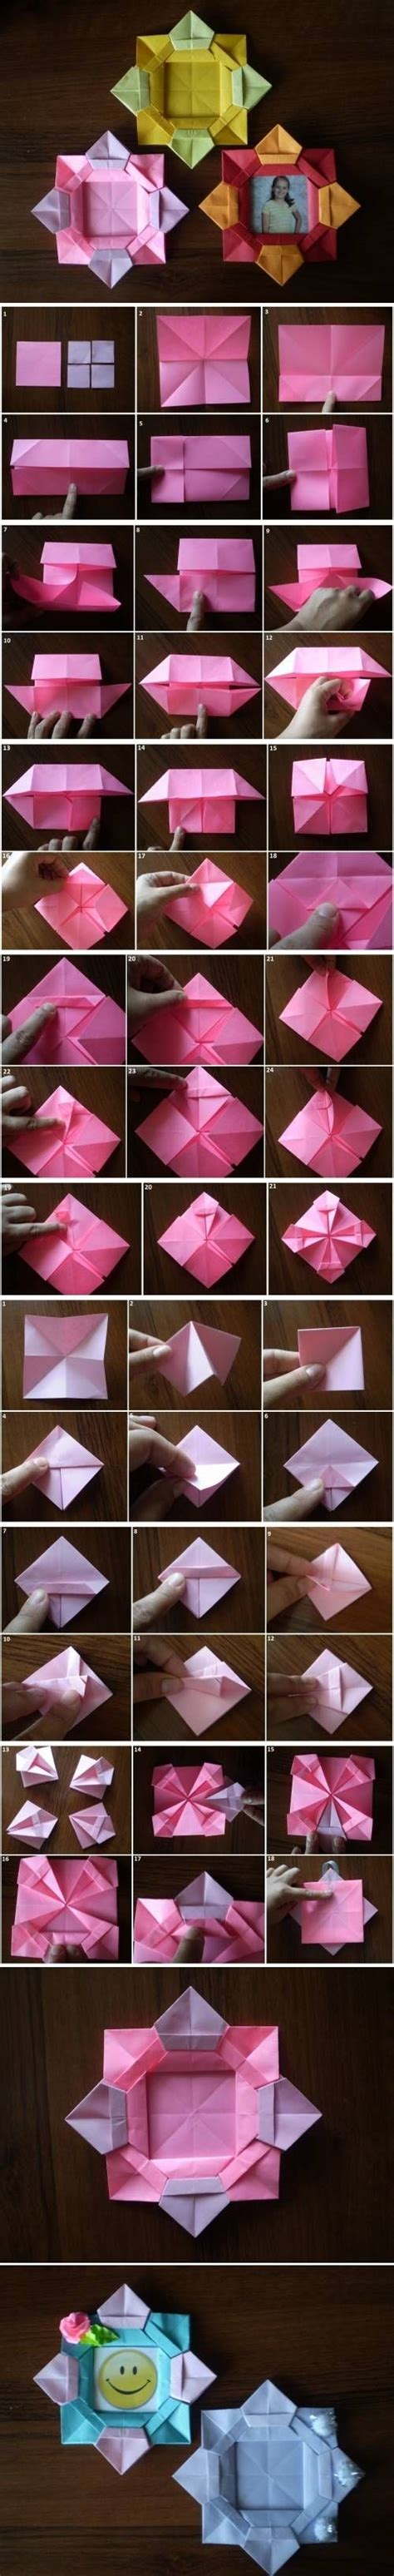 Diy Origami Flower - diy origami flower picture frame pictures photos and